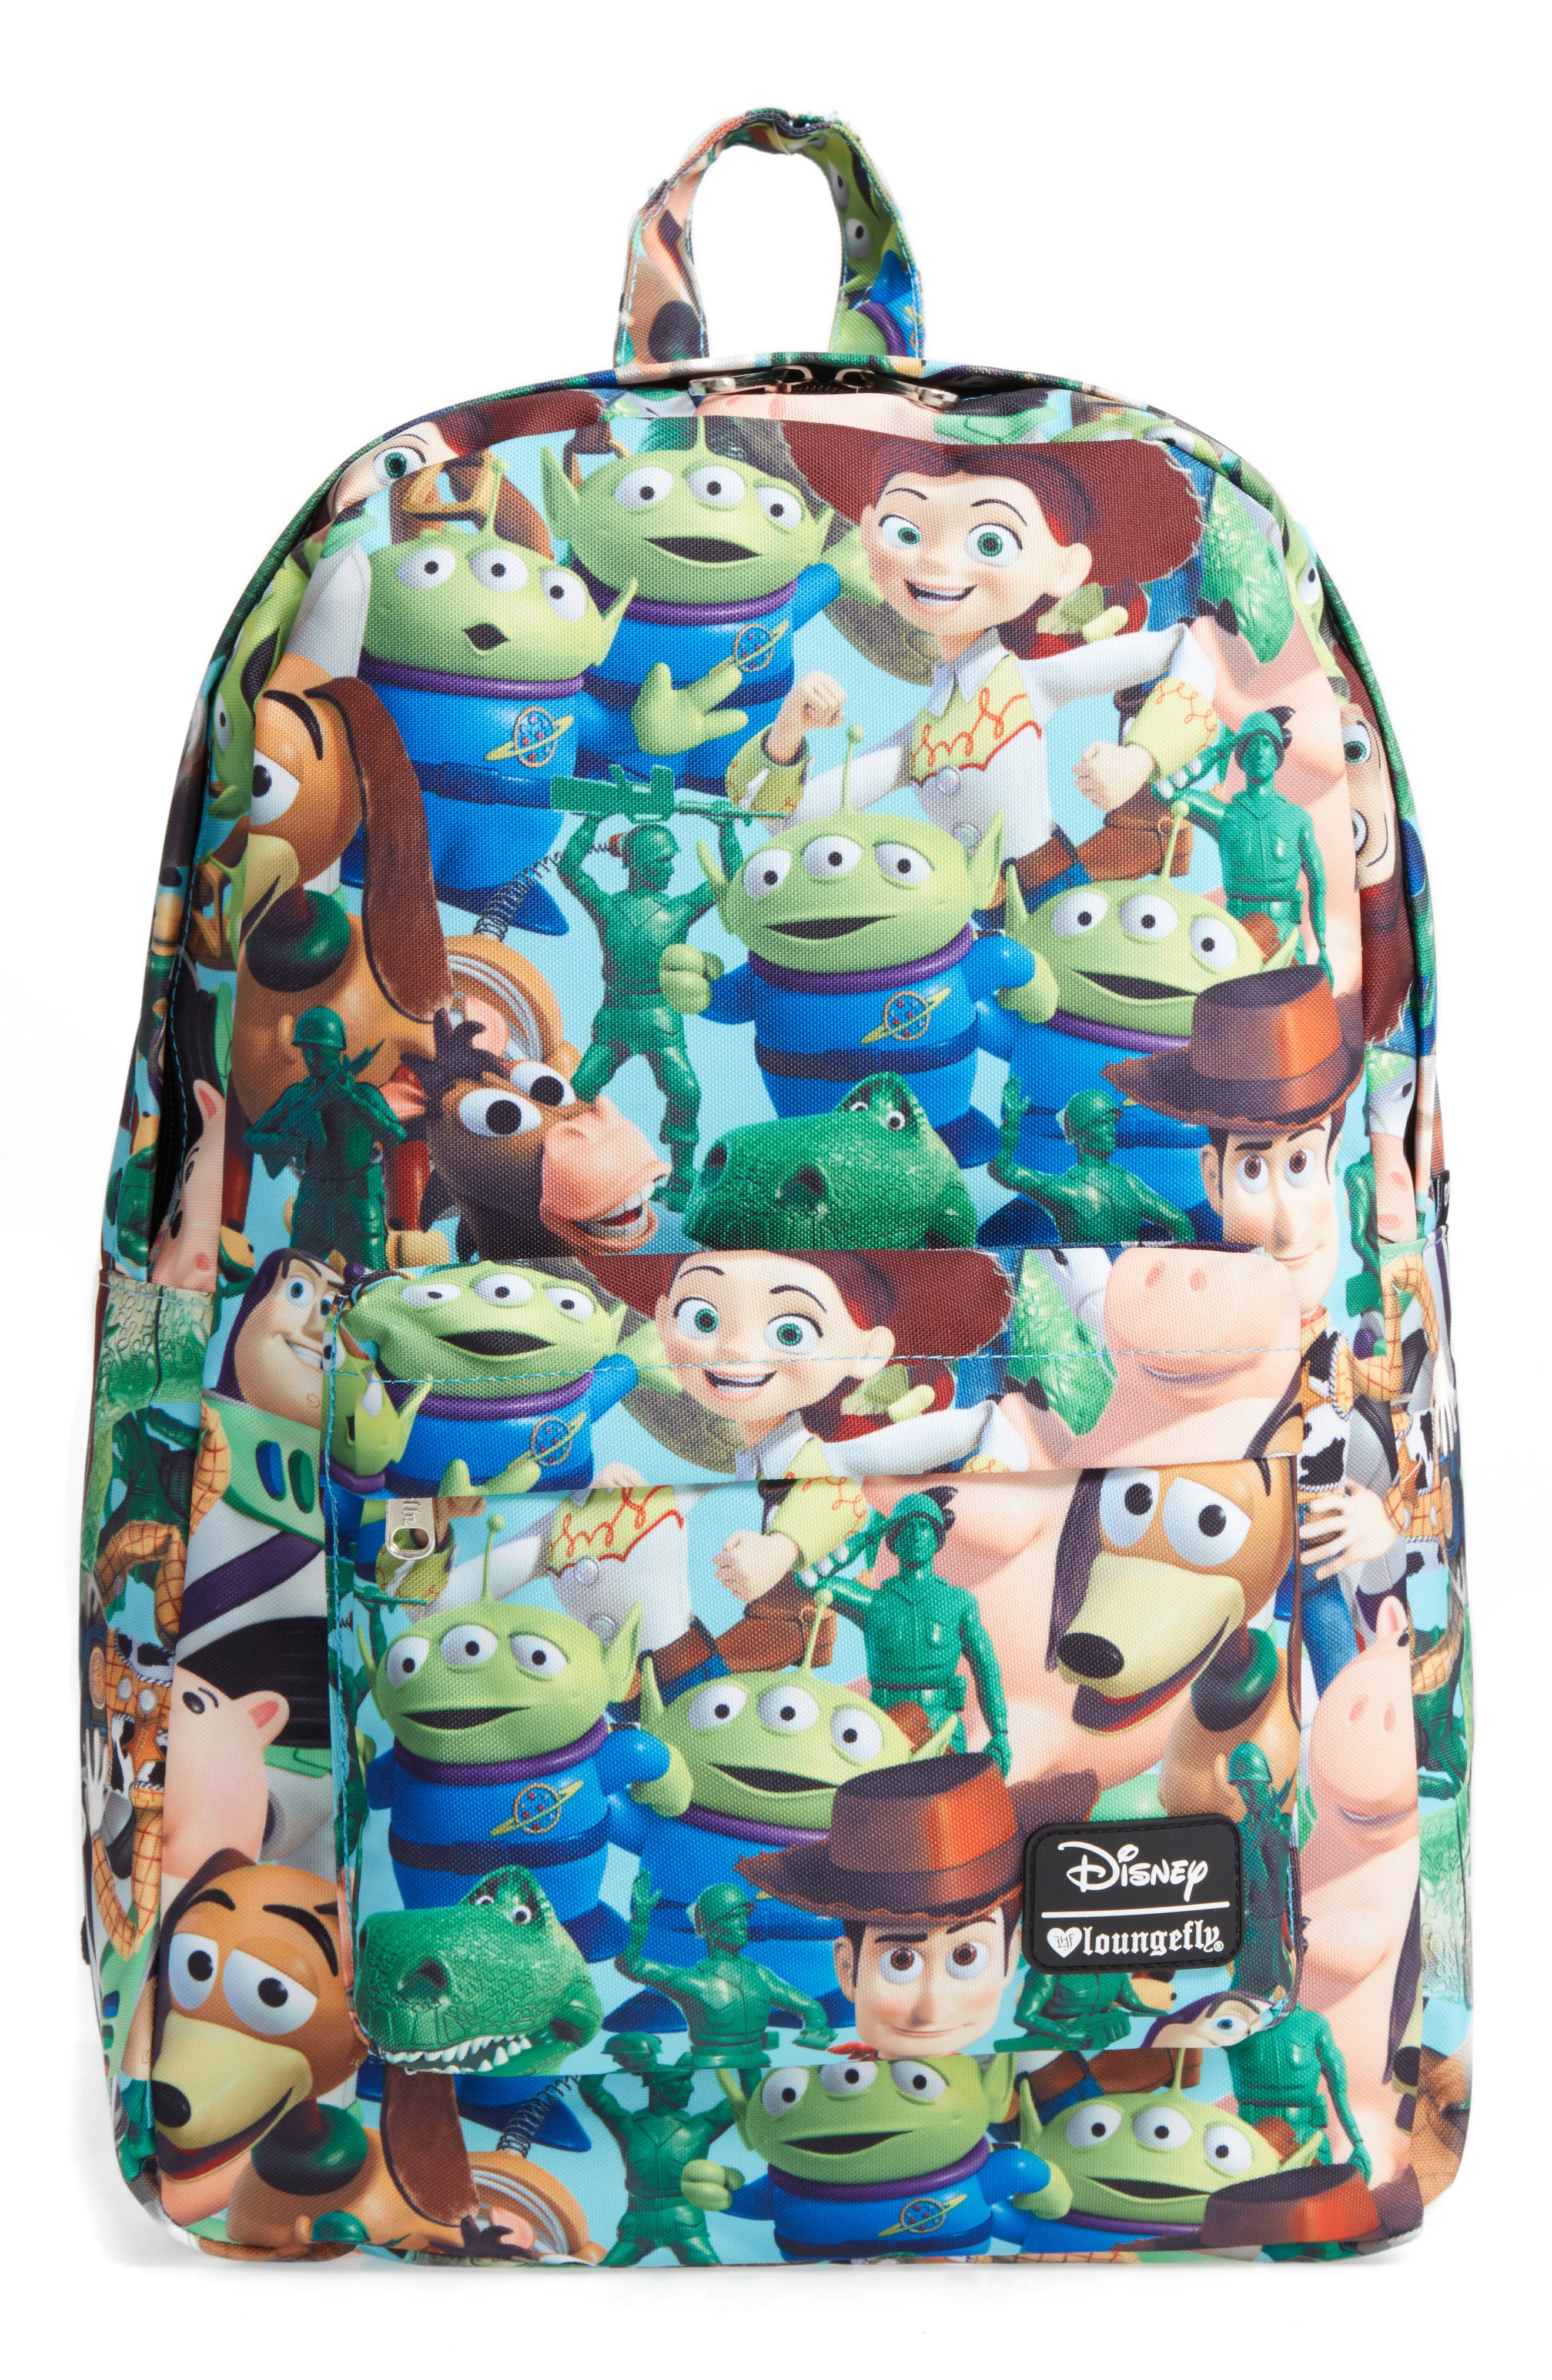 Disney<sup>®</sup> Toy Story Backpack,                             Main thumbnail 1, color,                             460